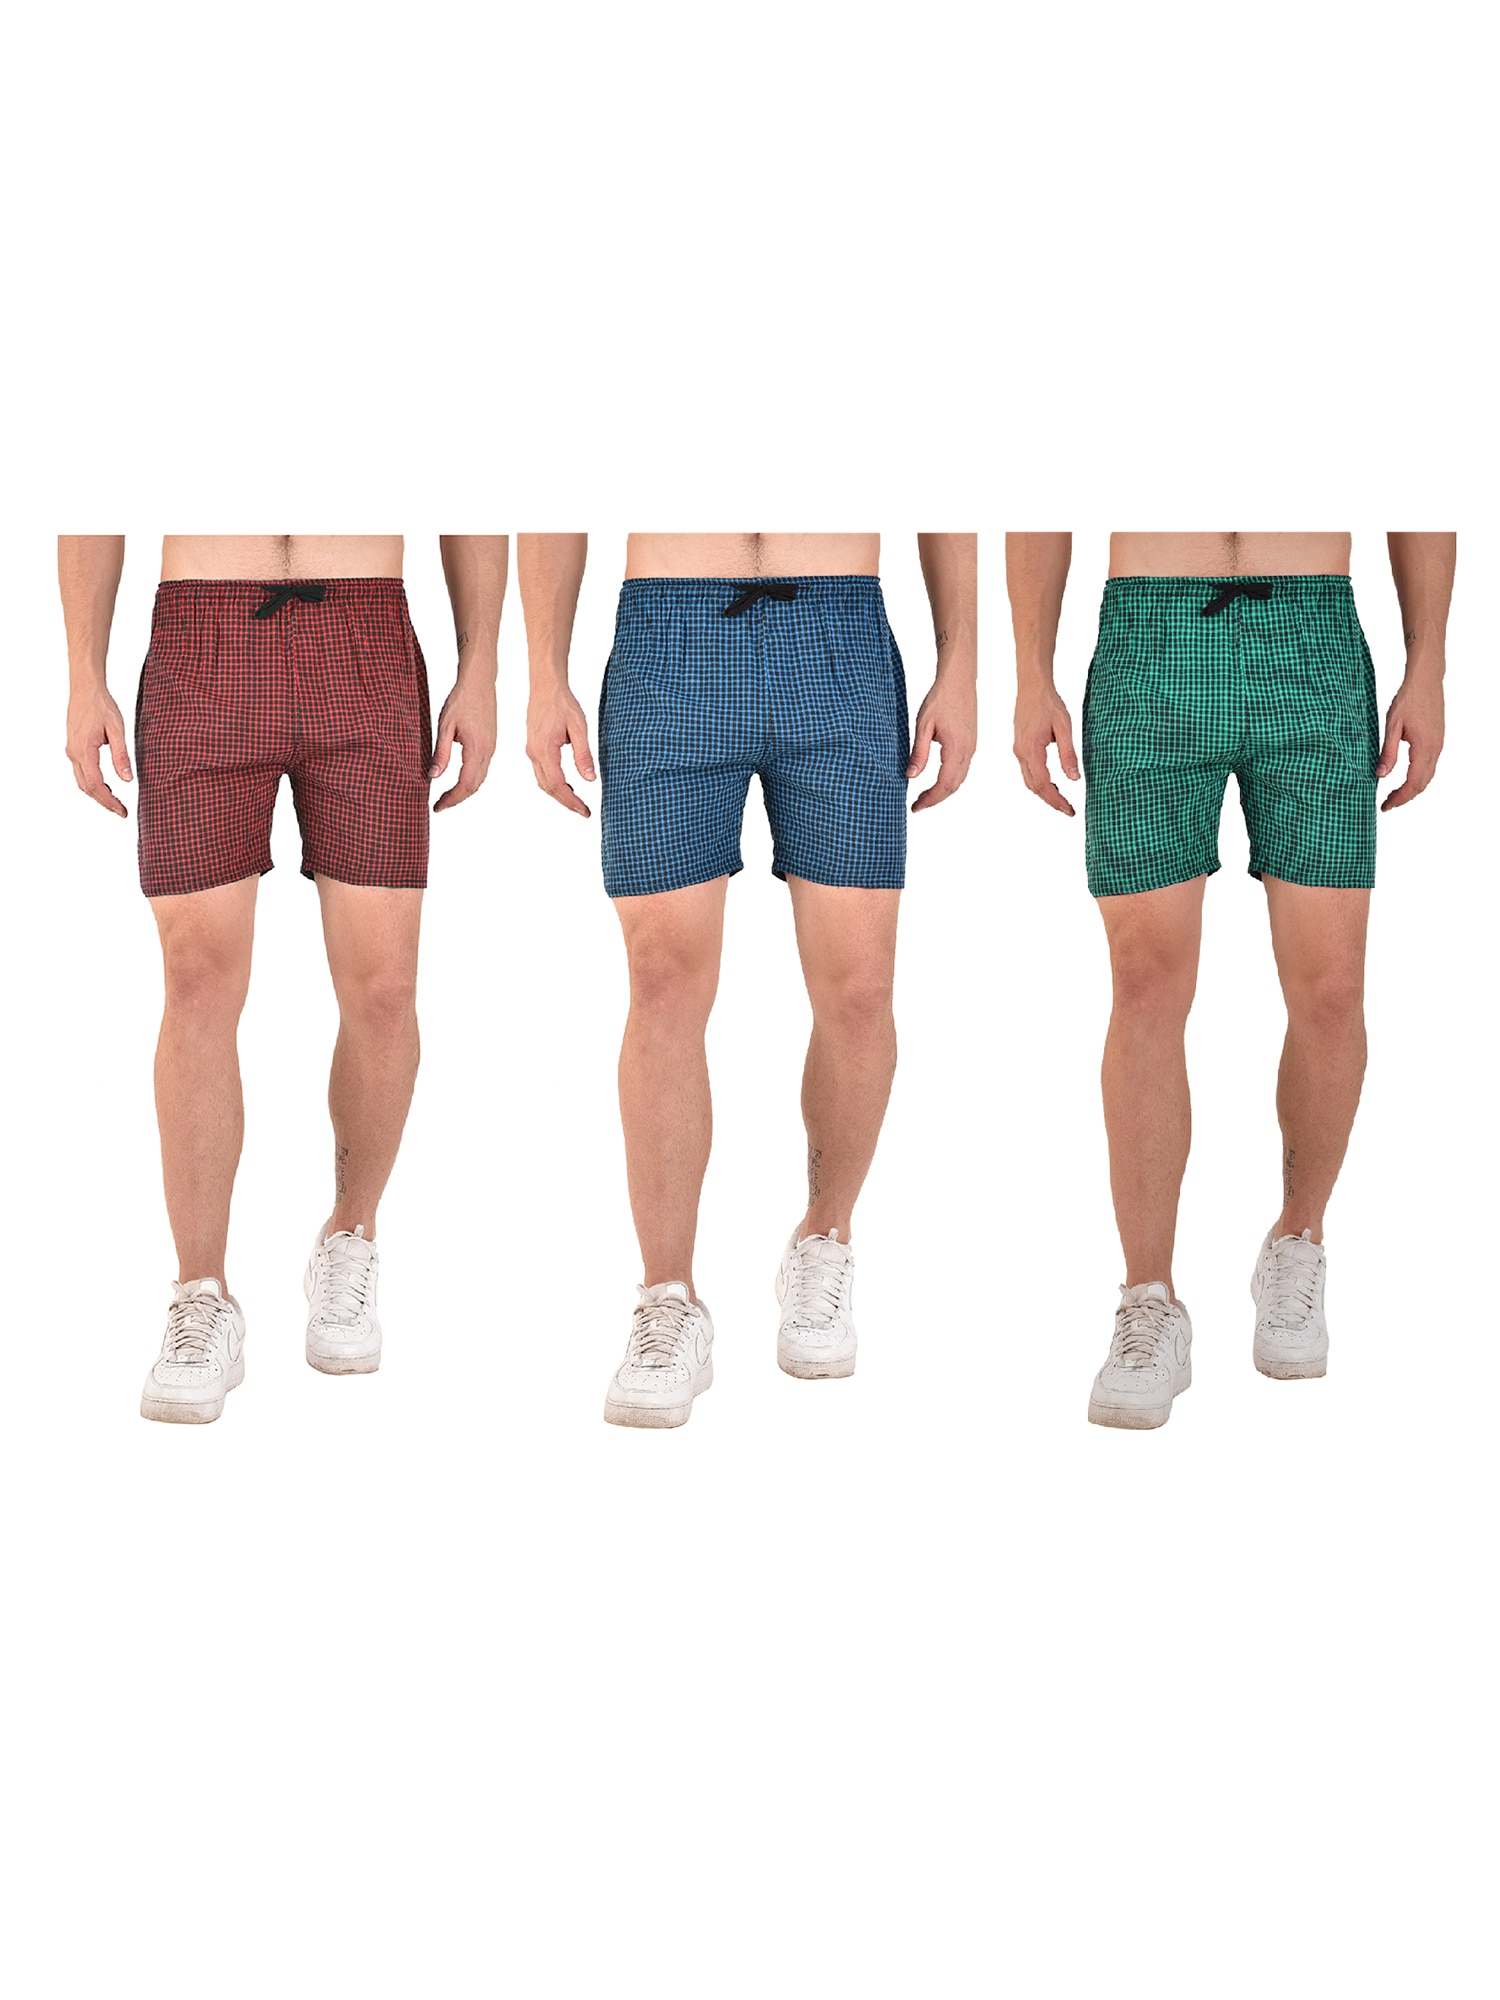 Girlish New Collection Sport Wear Shorts For Men's Combo Set 3 Multi Color